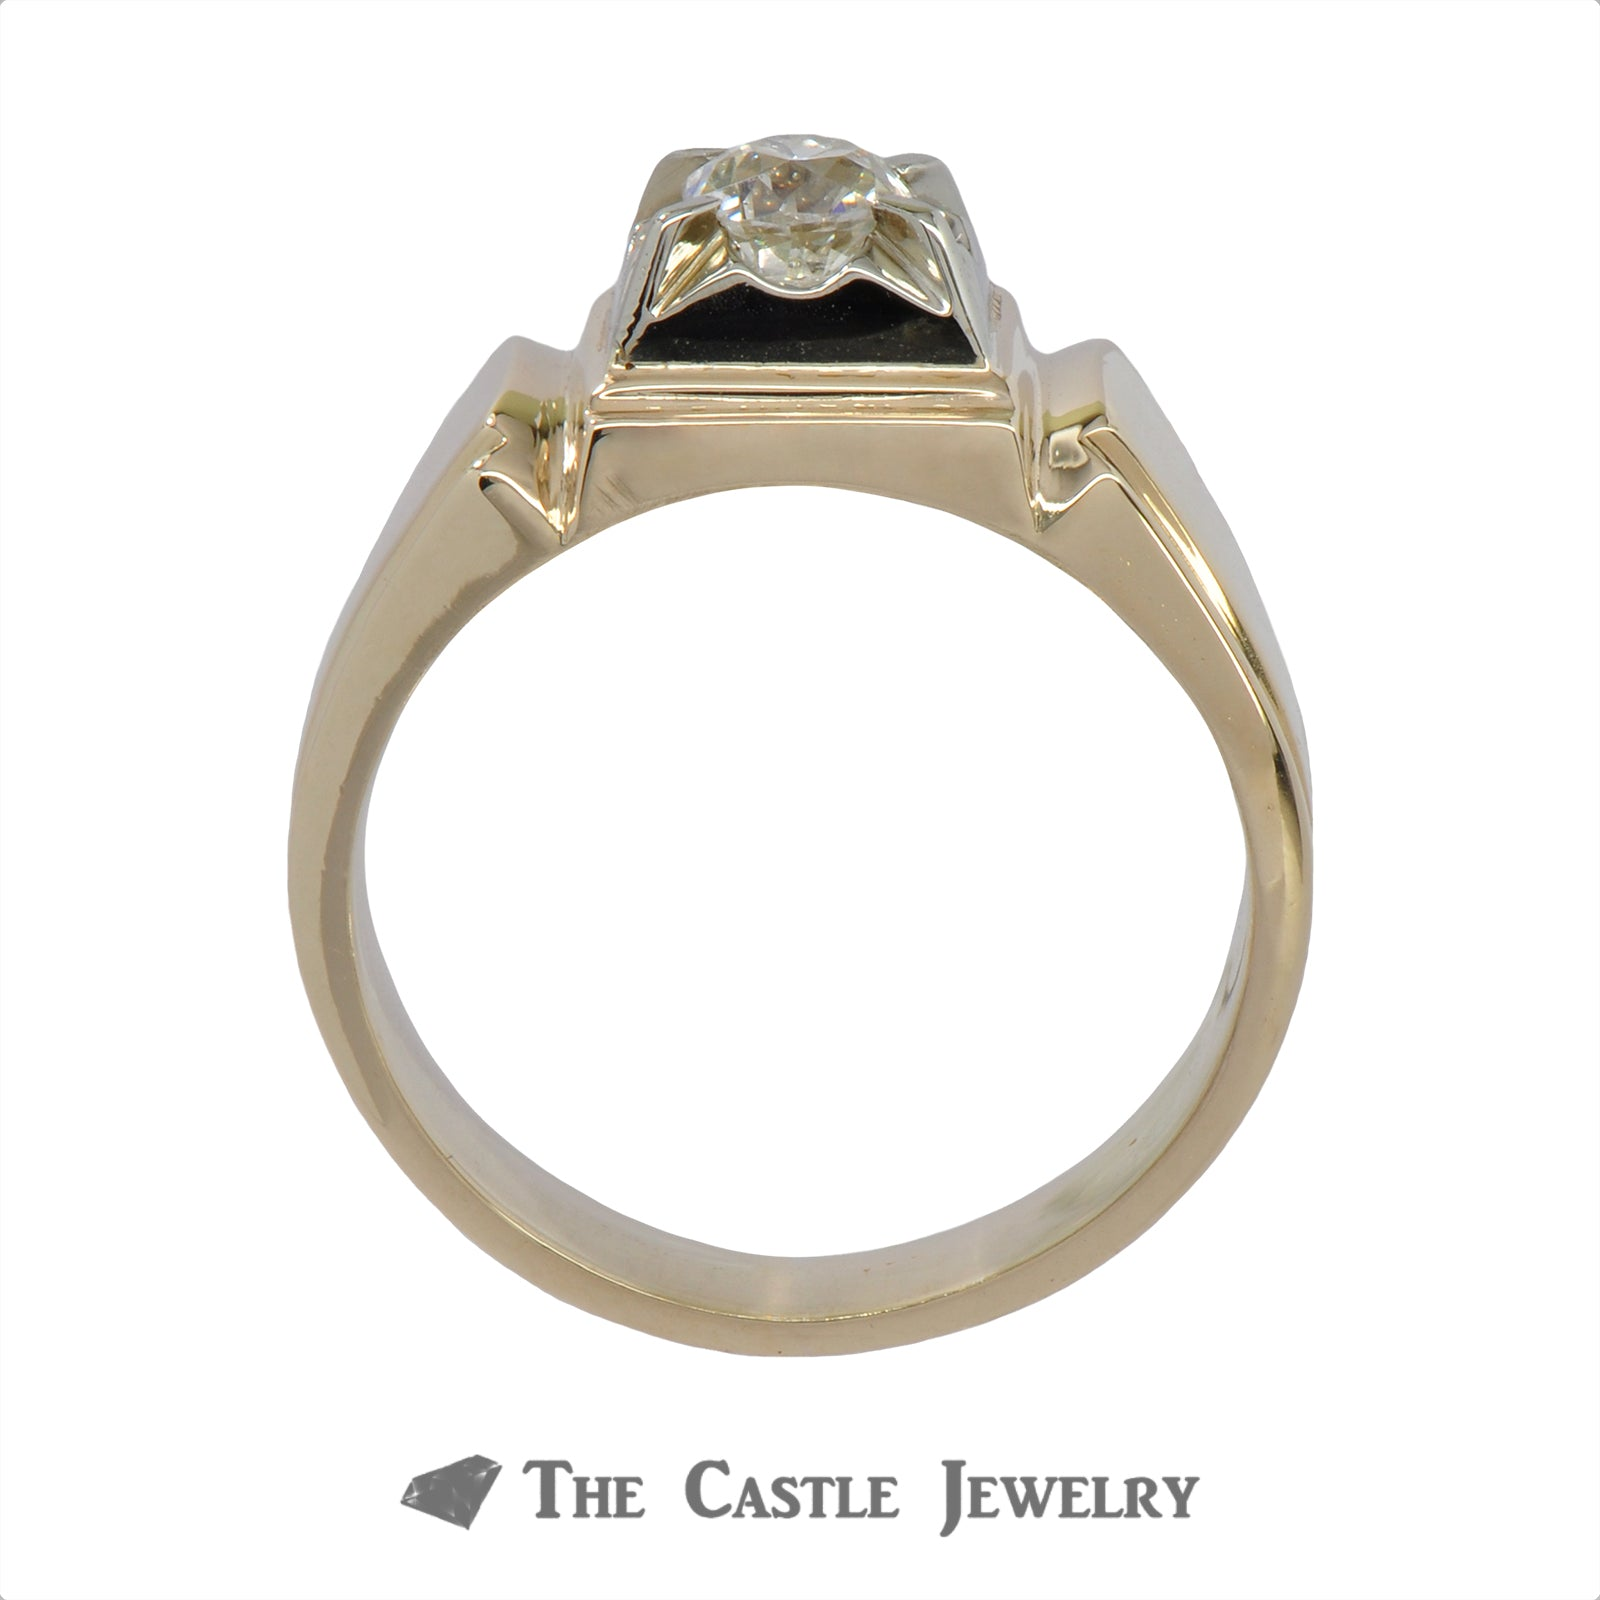 .50 Carat Old Mine Cut Gent's Diamond Ring In 14k Yellow Gold-1